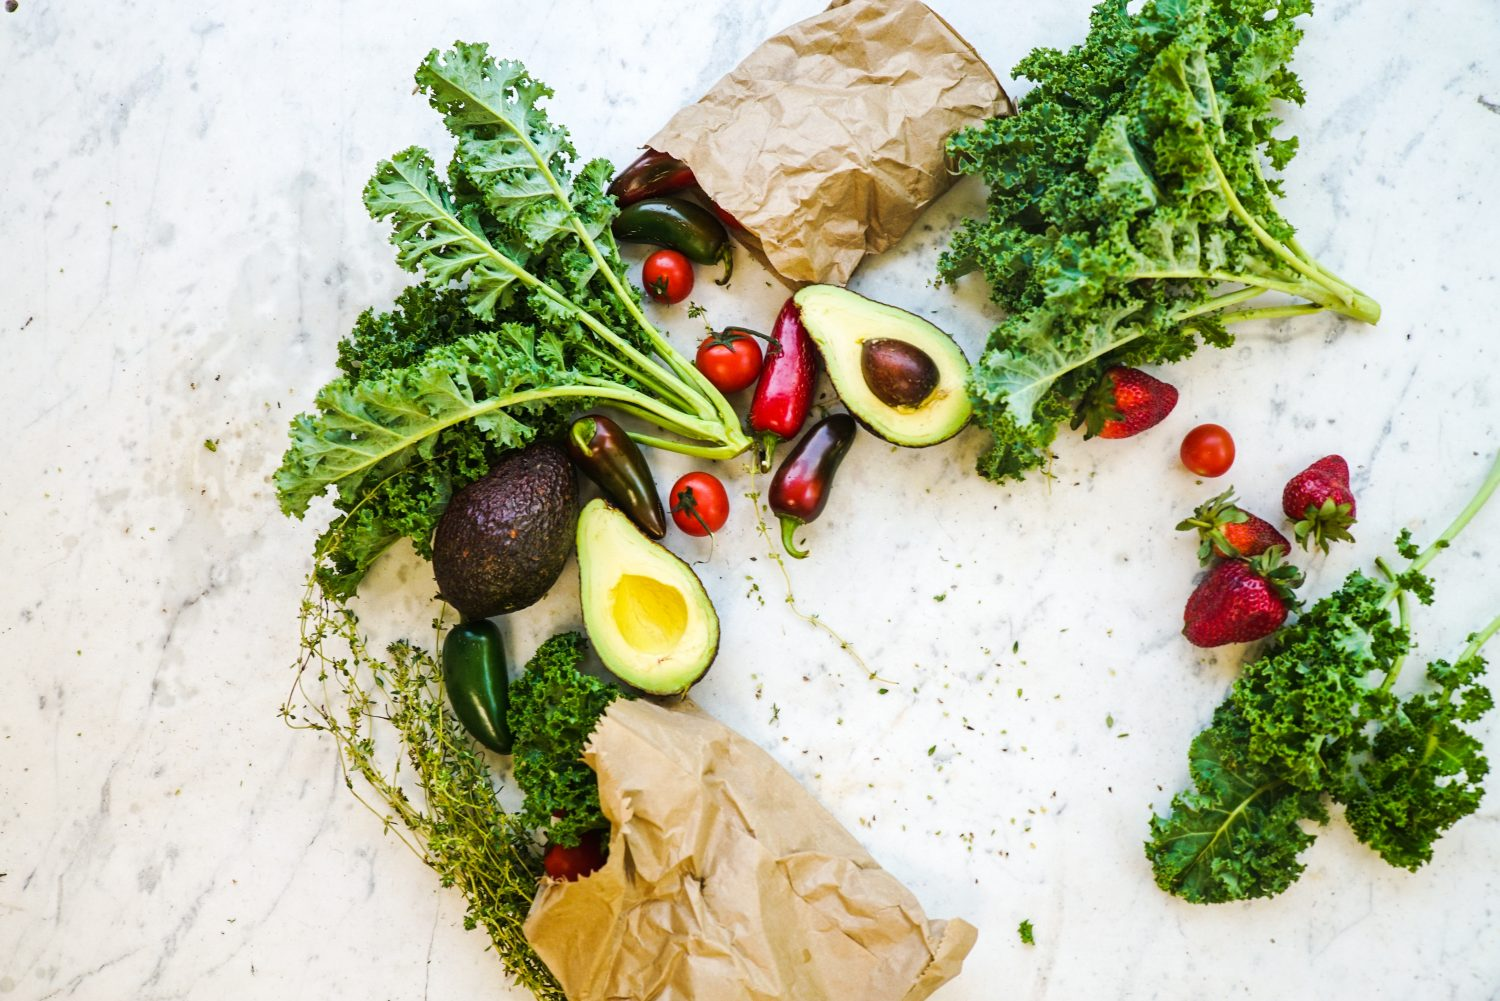 Two bags of healthy groceries - kale, avocados, strawberries - spilling onto a gray marble counter